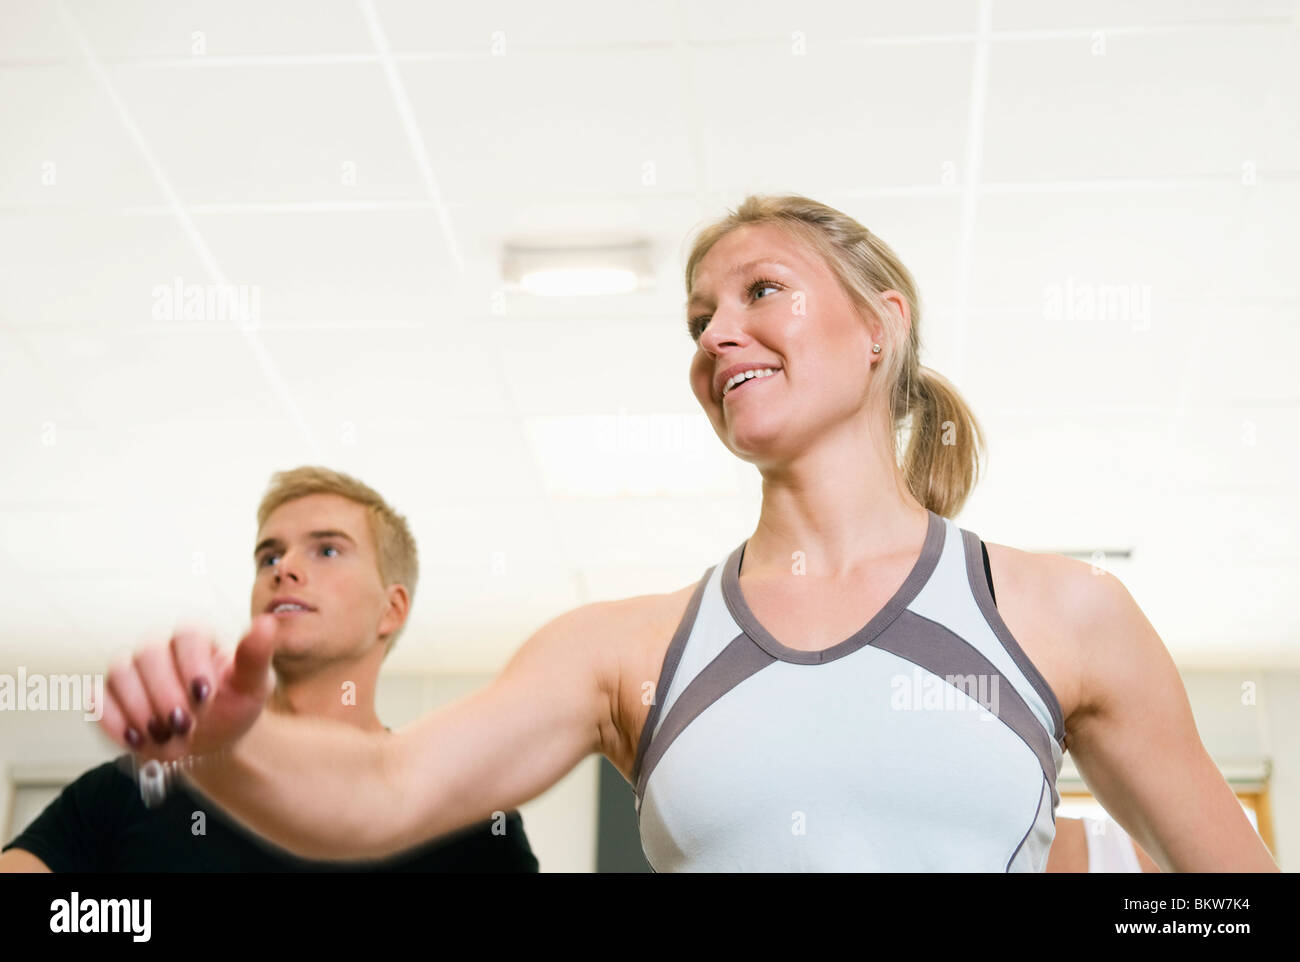 Girl and guy working out - Stock Image